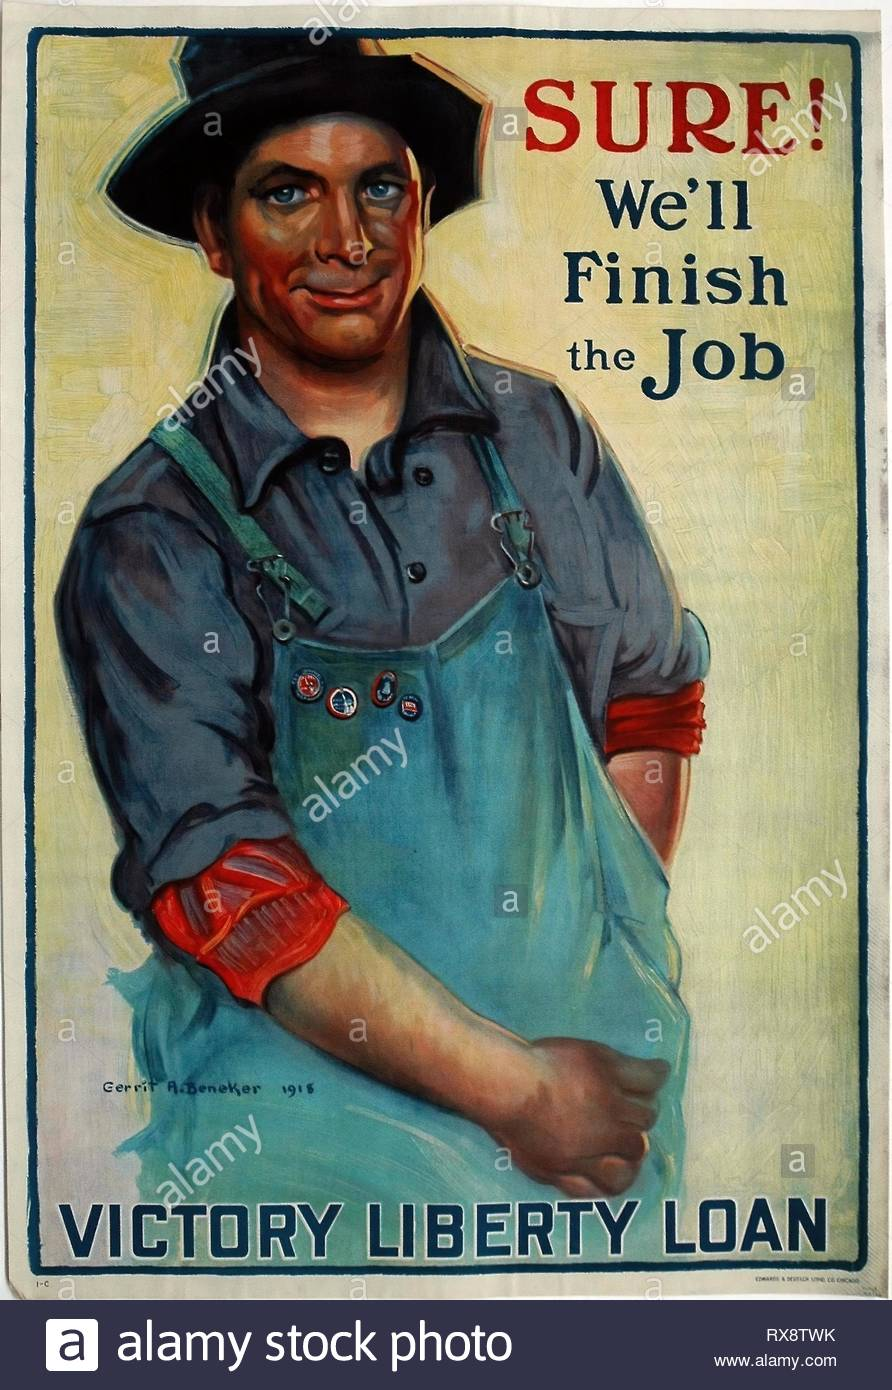 Sure! We'll Finish the Job. Gerrit Albertus Beneker (American, 1882-1934); printed by Edwards & Deutsch Litho. Co. Date: 1918. Dimensions: 959 x 655 mm (sheet). Color lithograph on cream wove paper, laid down on linen. Origin: United States. Museum: The Chicago Art Institute. - Stock Image